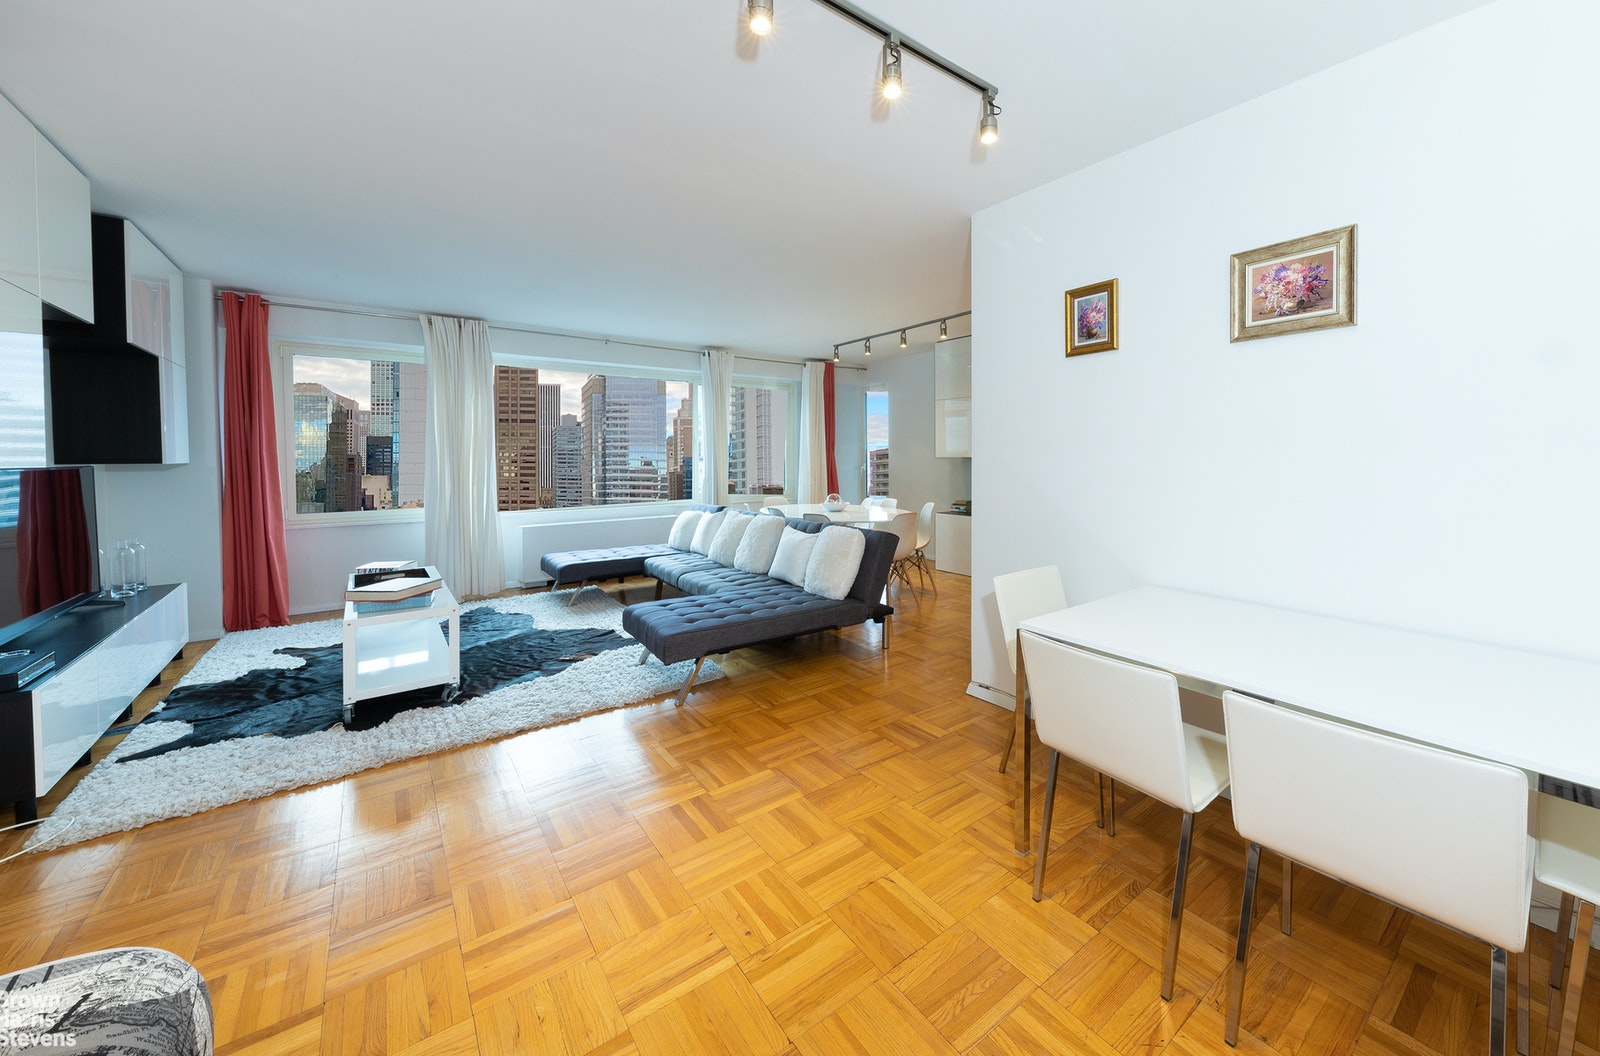 303 East 57th Street 24e, Midtown East, NYC, 10022, $495,000, Property For Sale, Halstead Real Estate, Photo 2